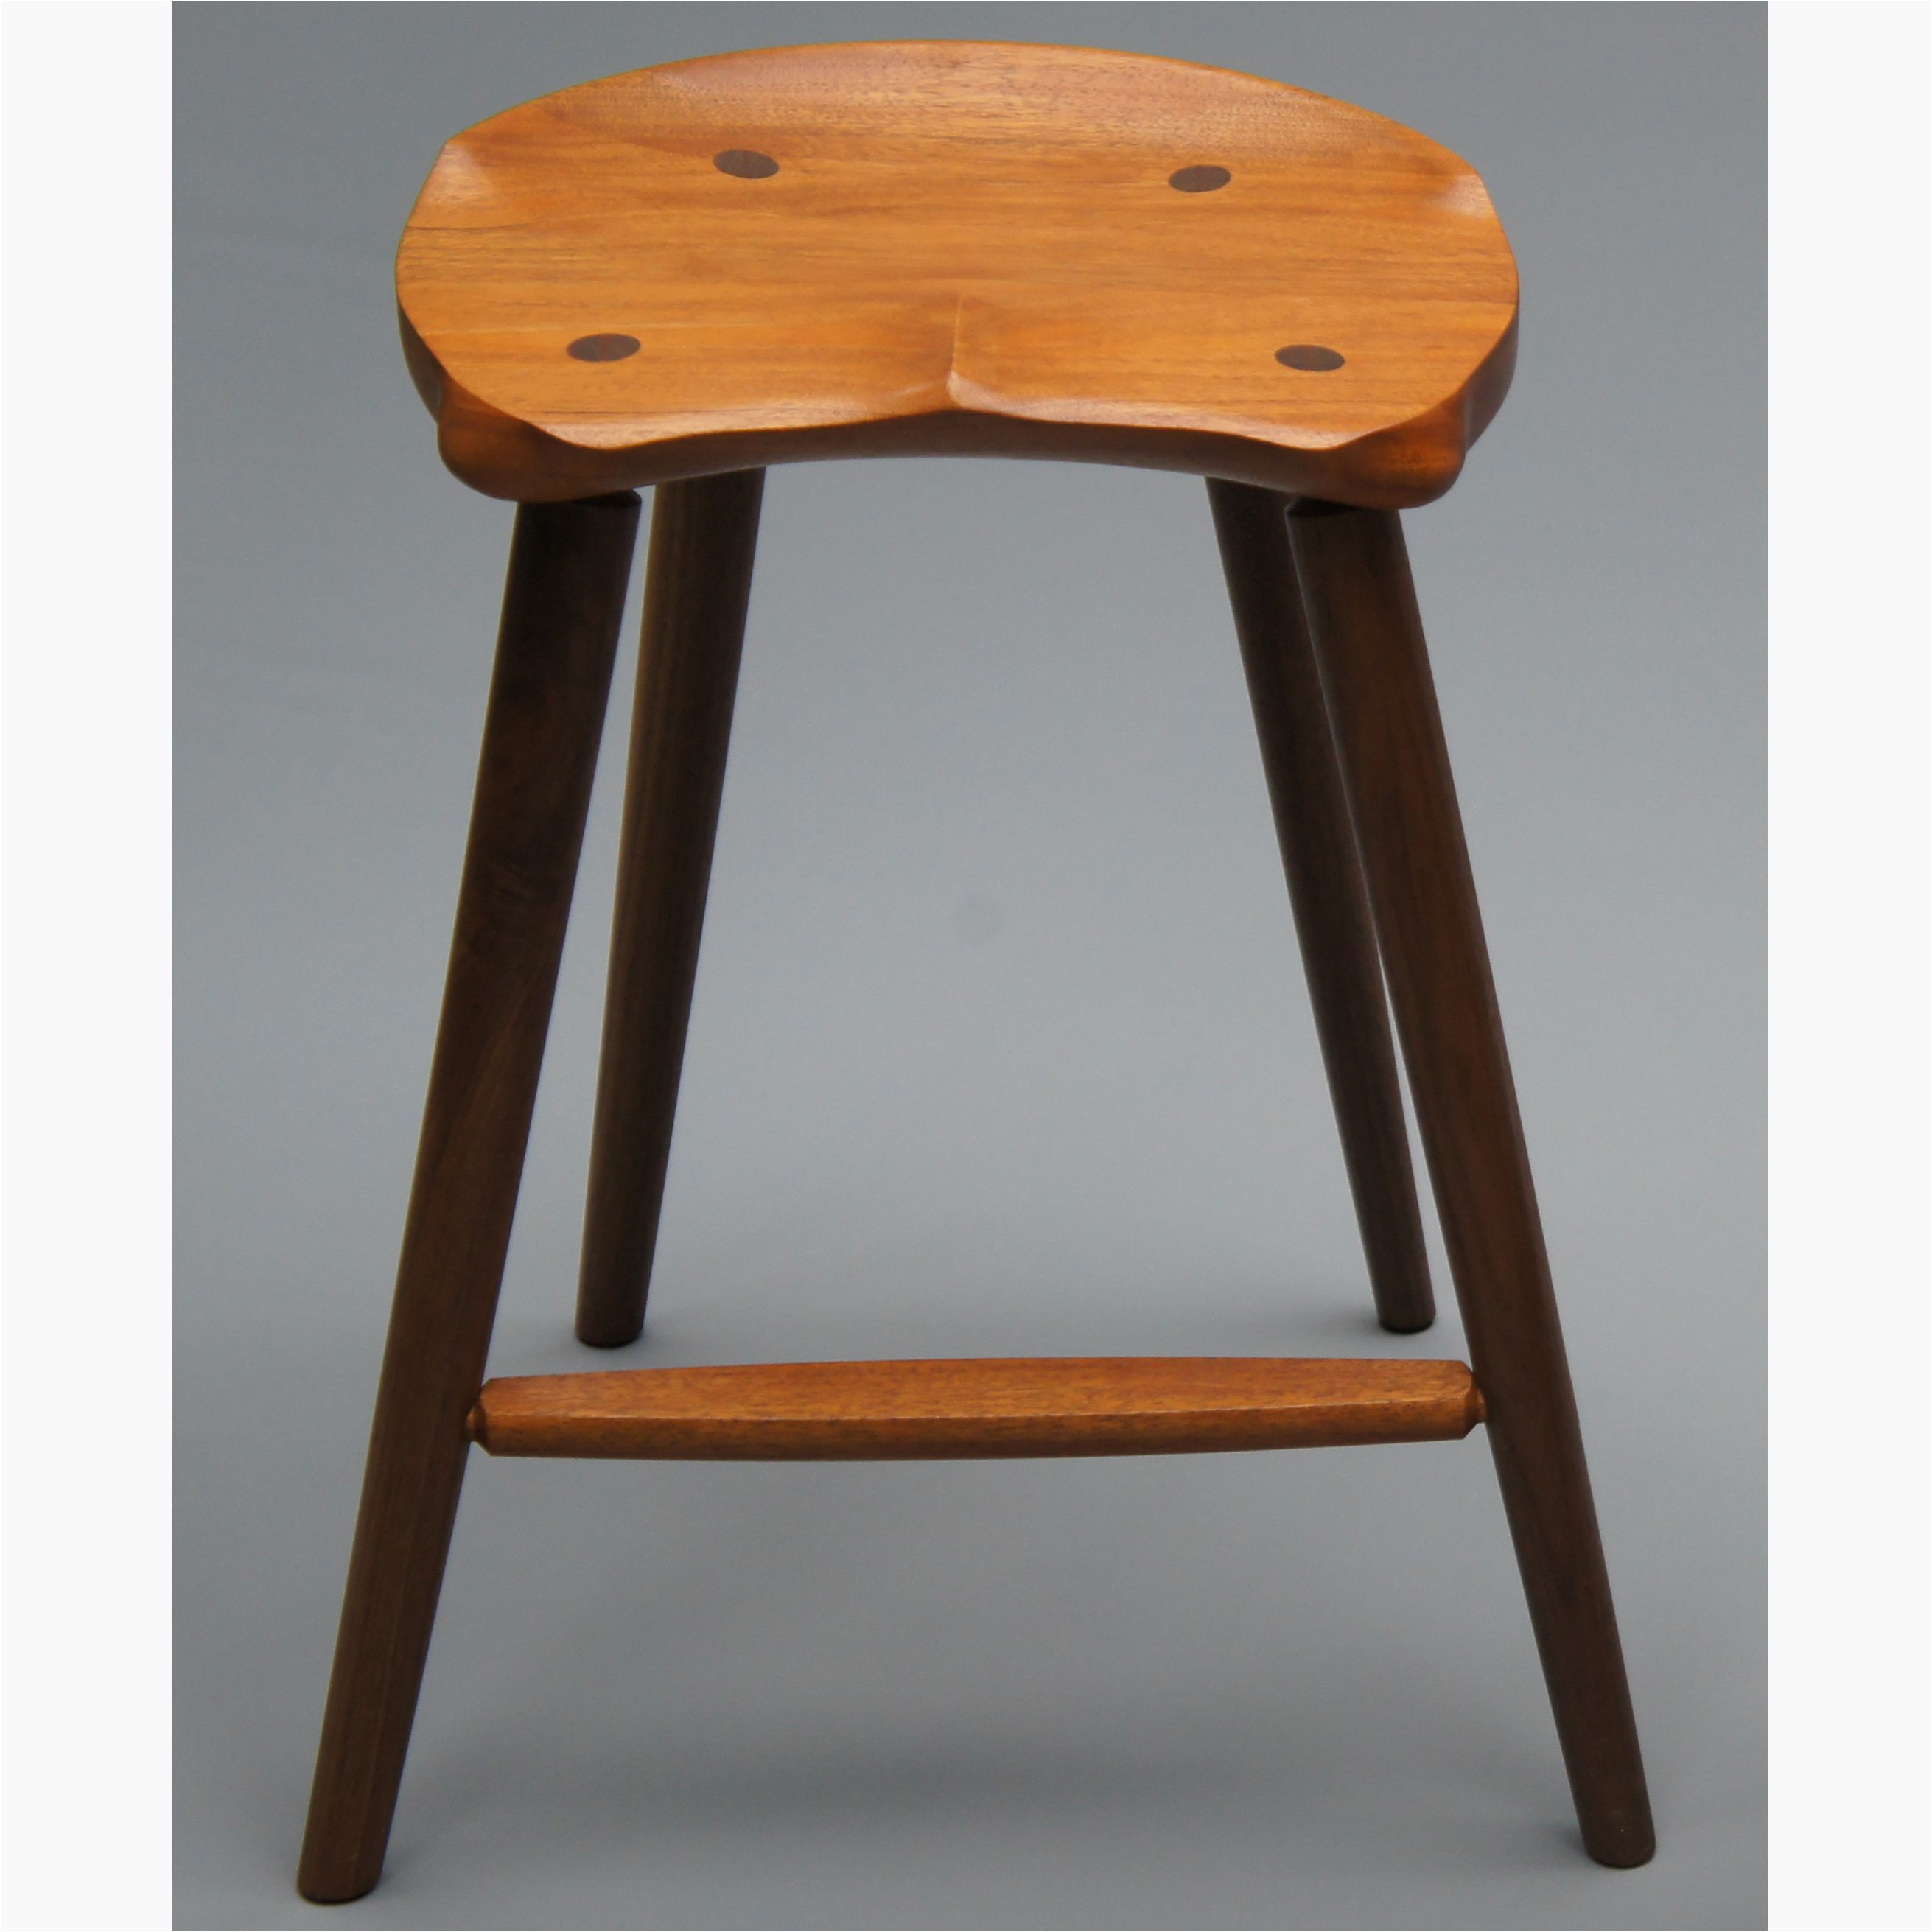 saddle seat bar stools 24 inch download full size of engaging furniture curved black wooden